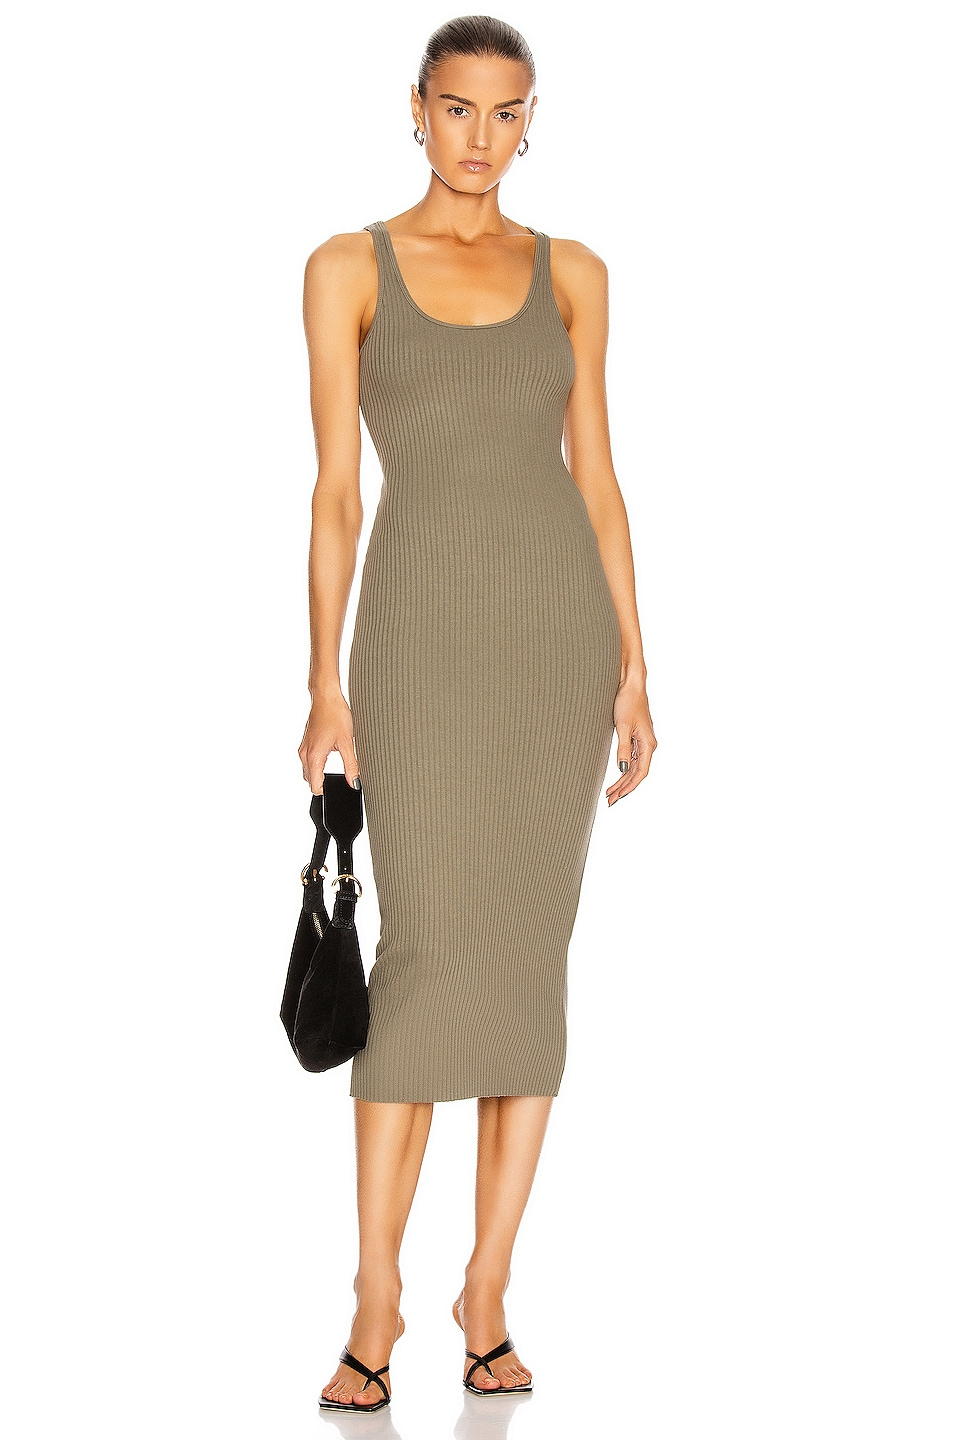 Image 1 of The Range Utilitarian Tank Dress in Utility